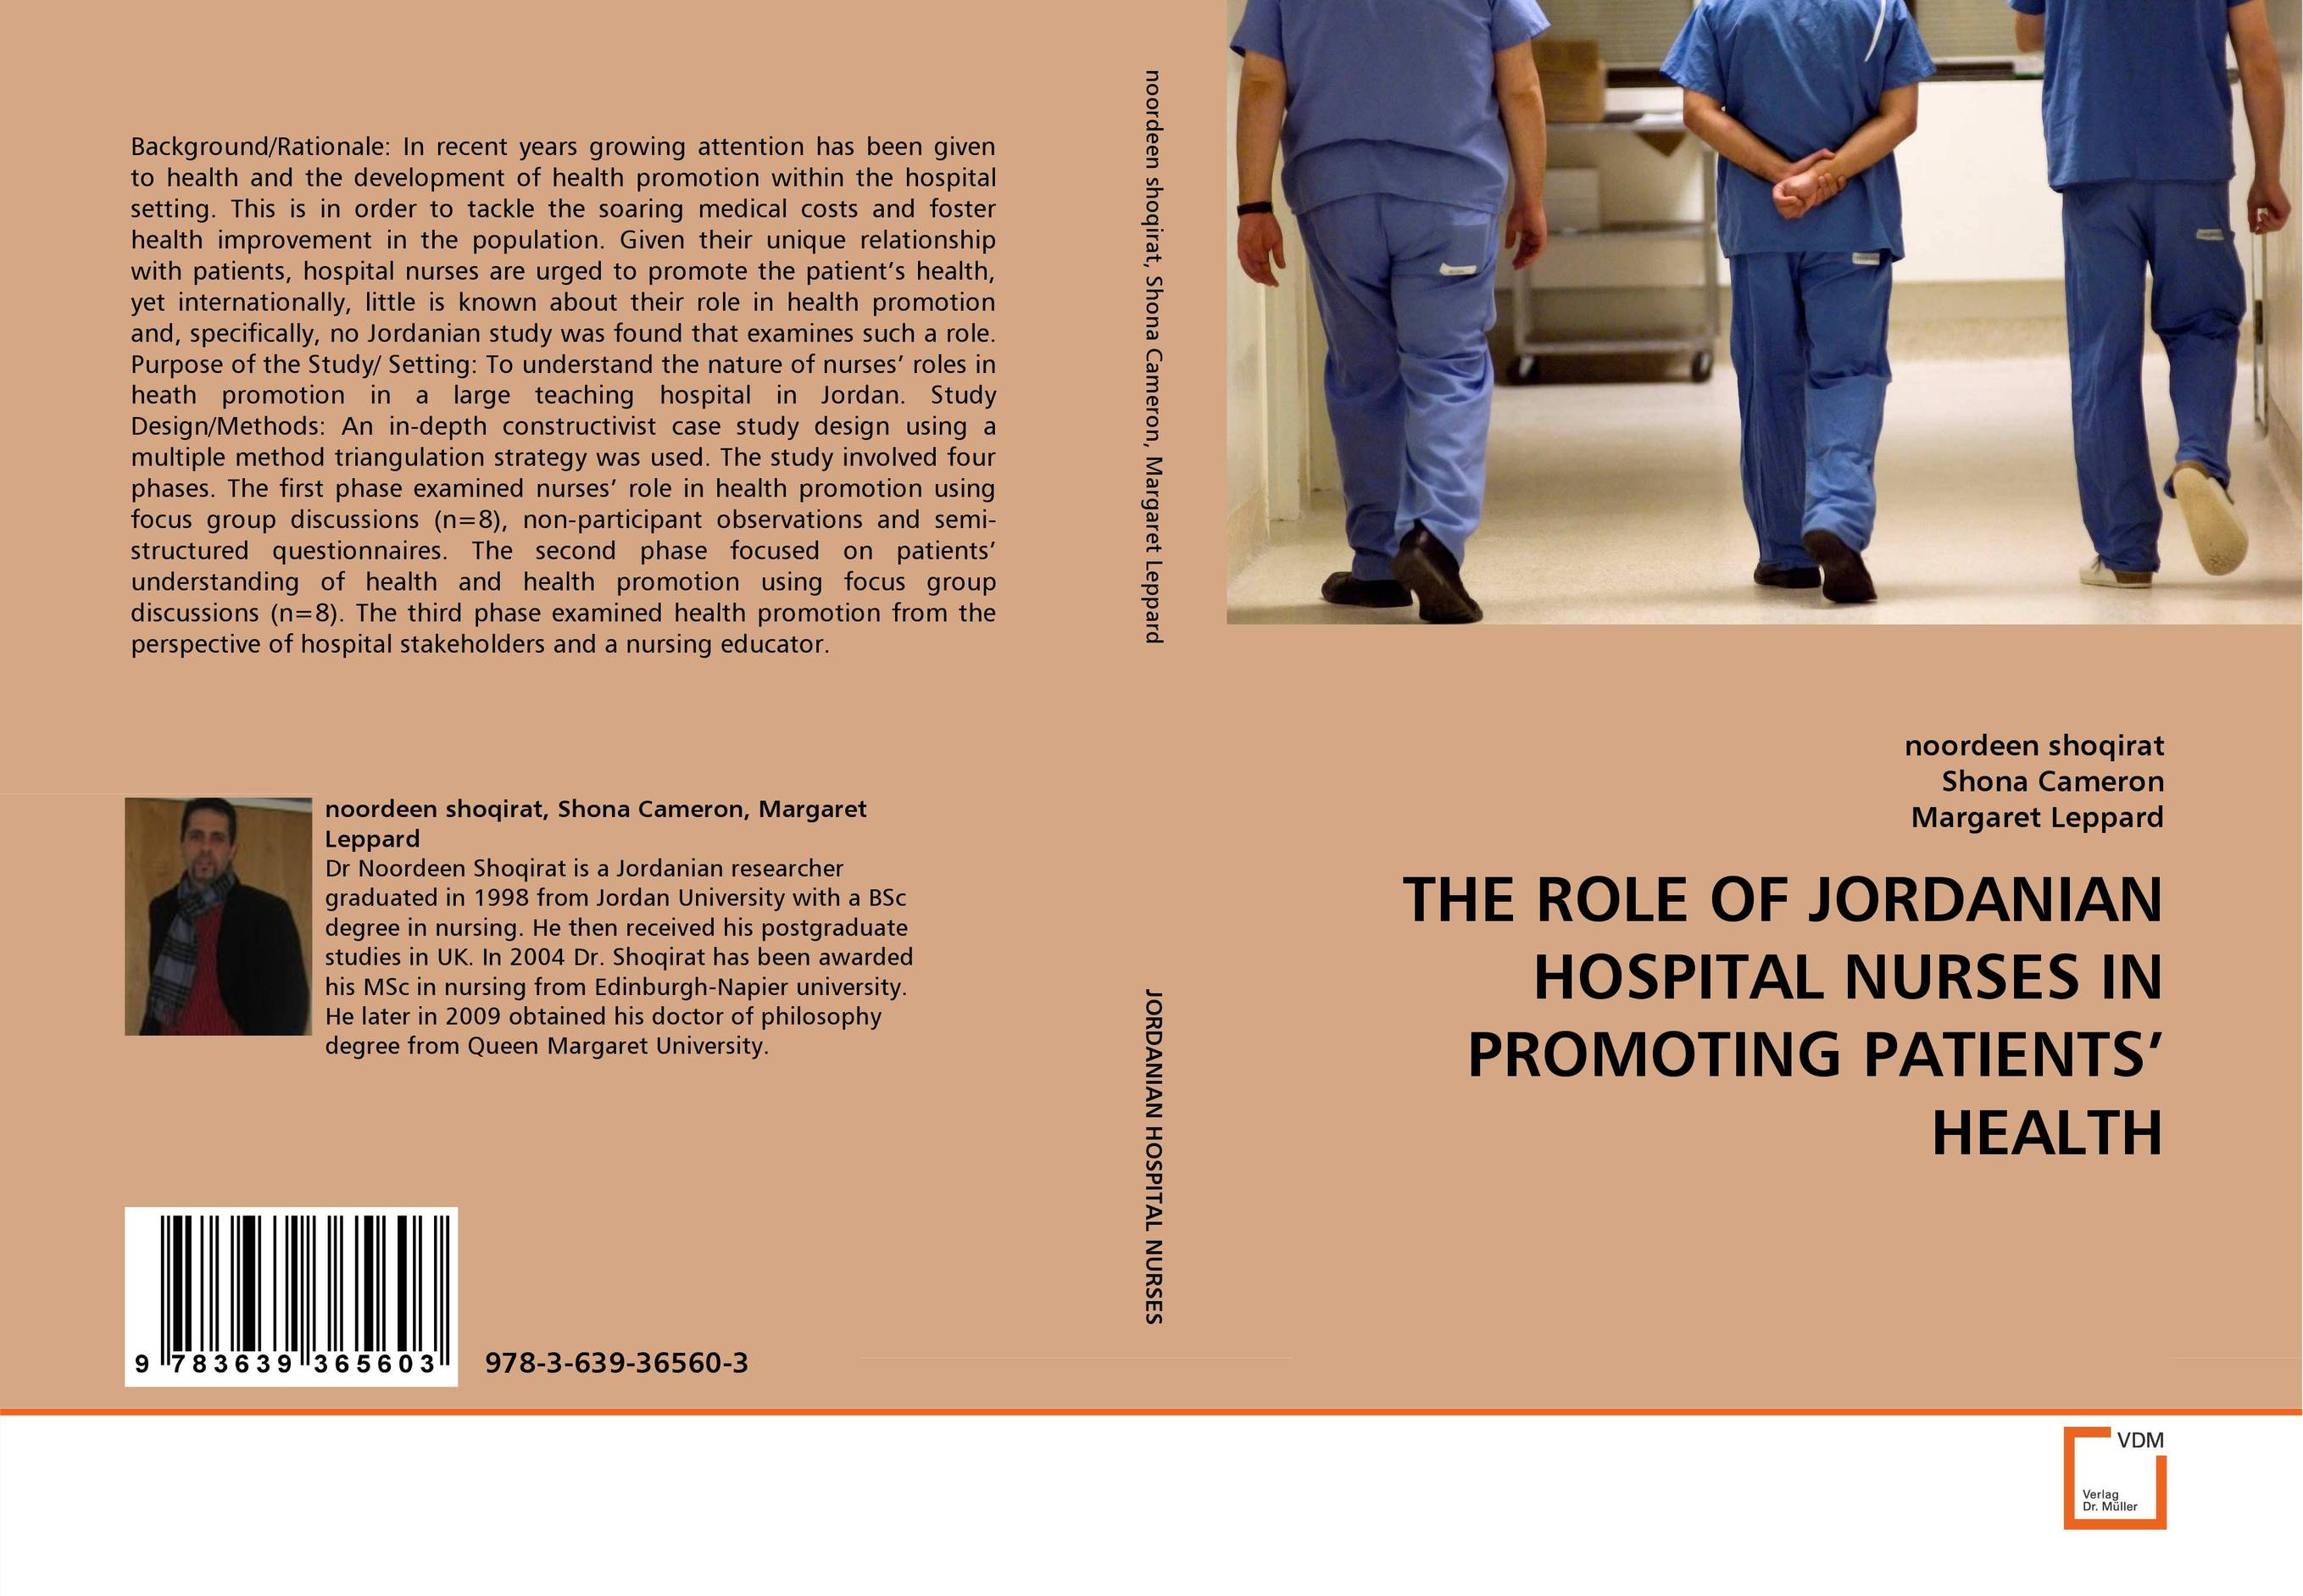 THE ROLE OF JORDANIAN HOSPITAL NURSES IN PROMOTING PATIENTS'' HEALTH an evaluation of the role of eia database in promoting eia practice